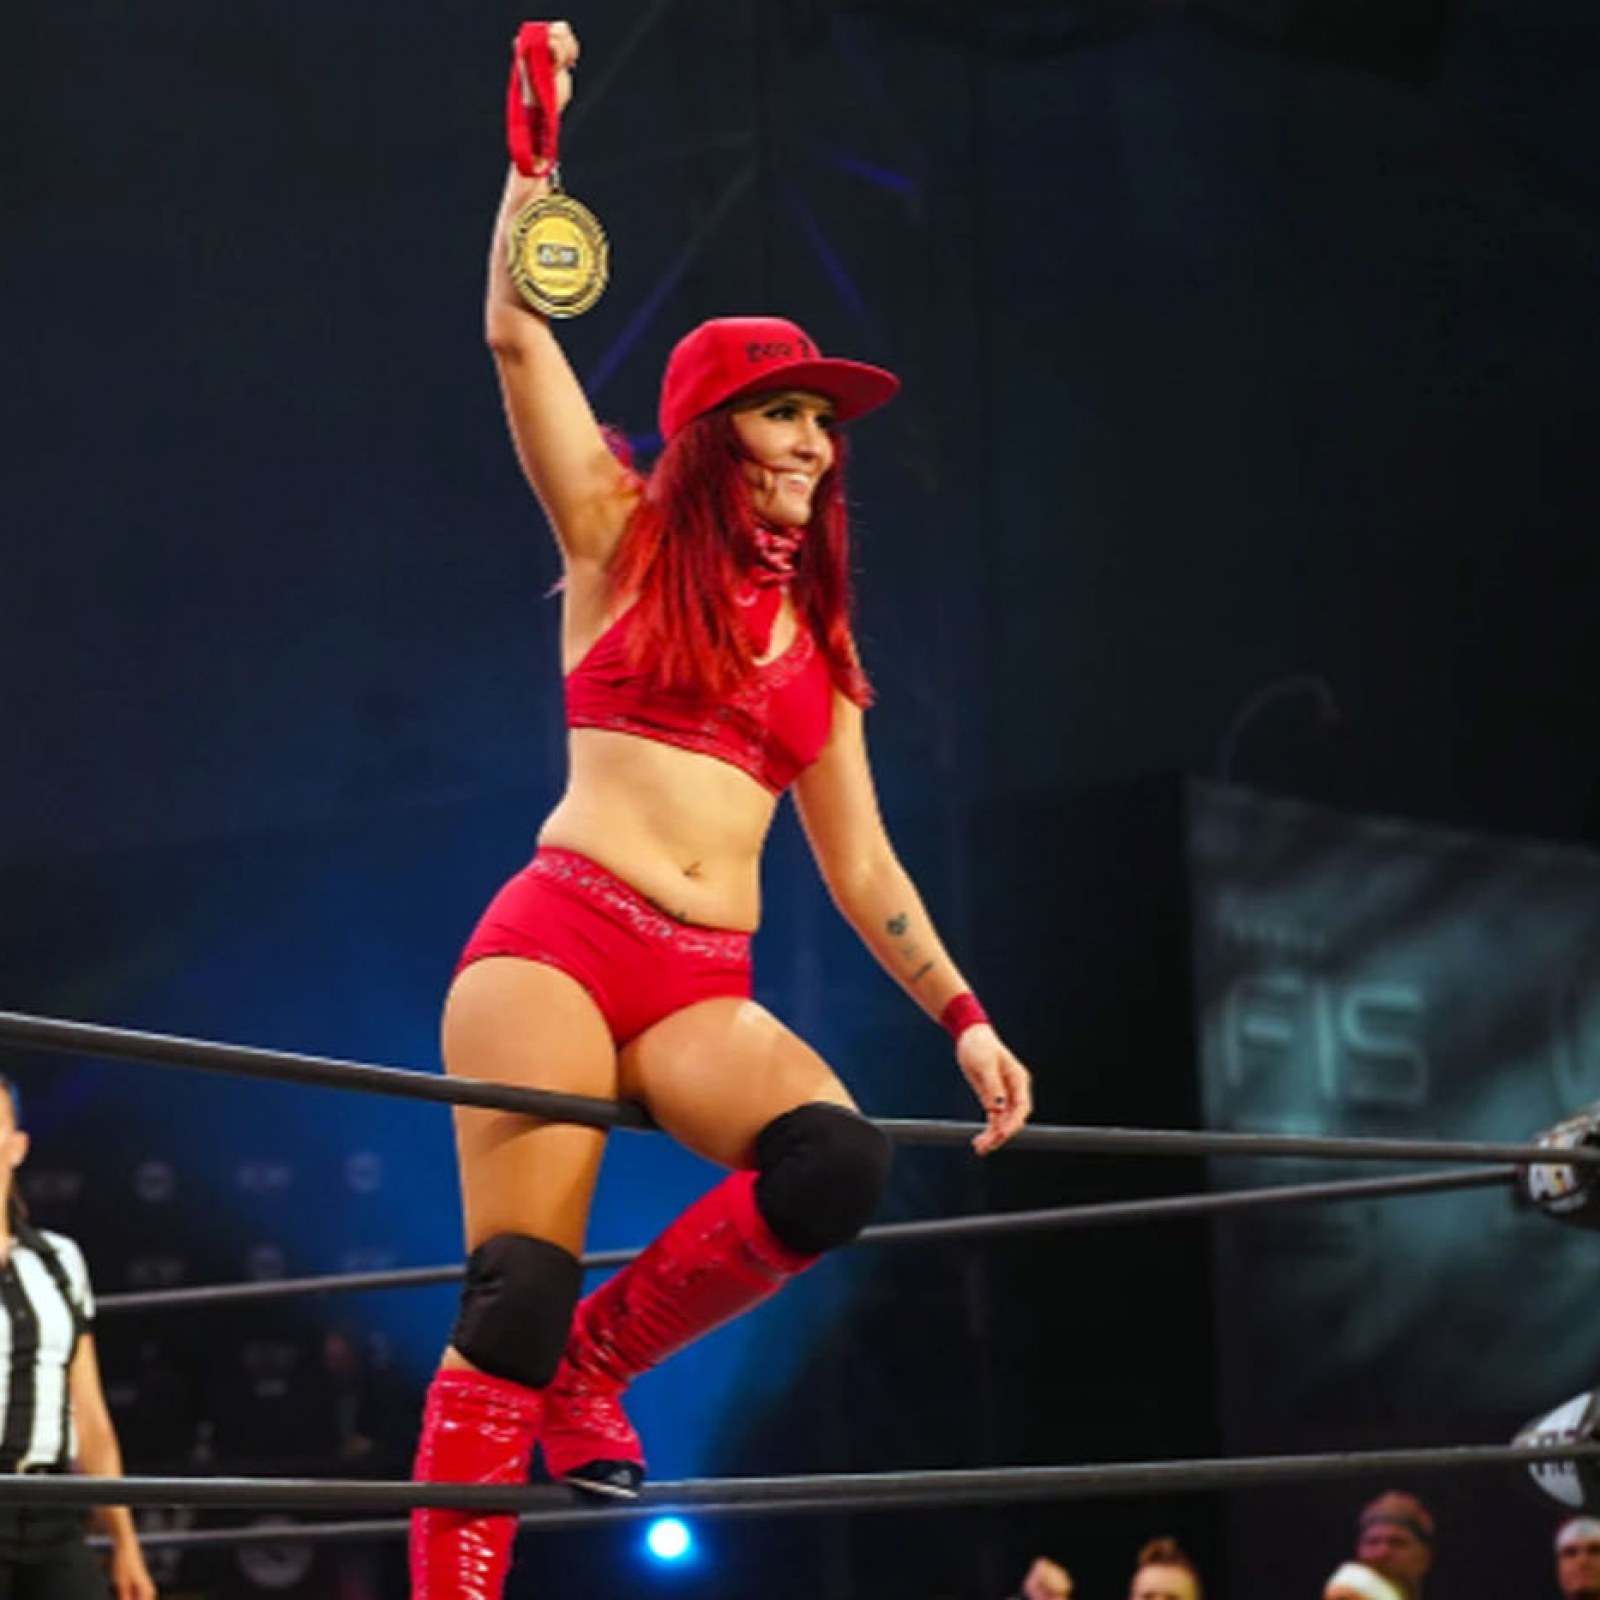 Ivelisse Confirms AEW Signing and Says Thunder Rosa Incident Is 'Self-Explanatory'